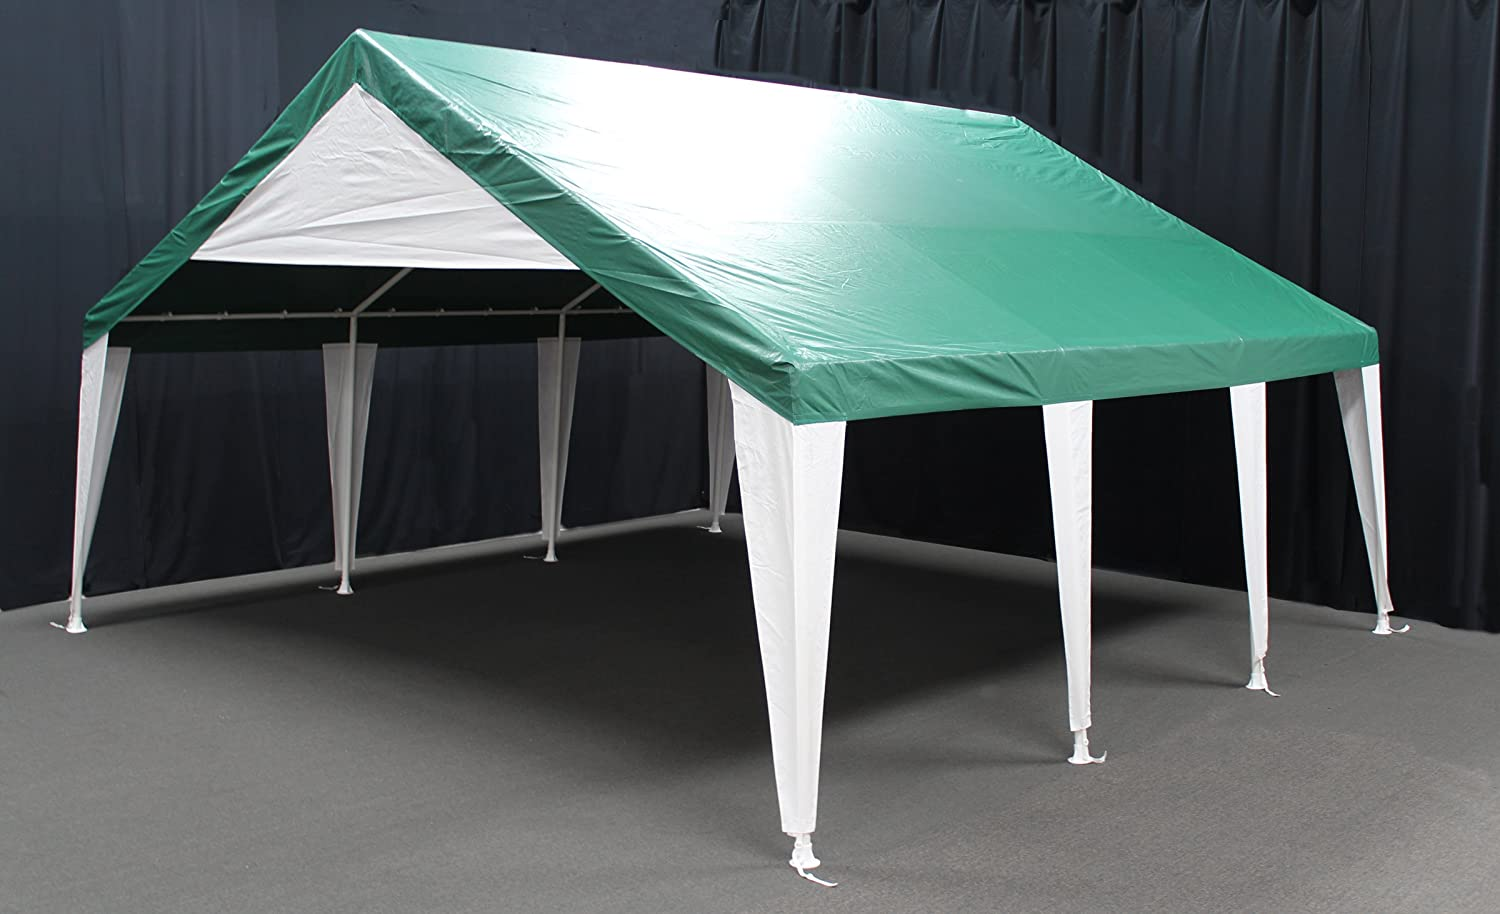 King Canopy ET2020G 20-Feet by 20-Feet Event Tent Canopy, Green and White